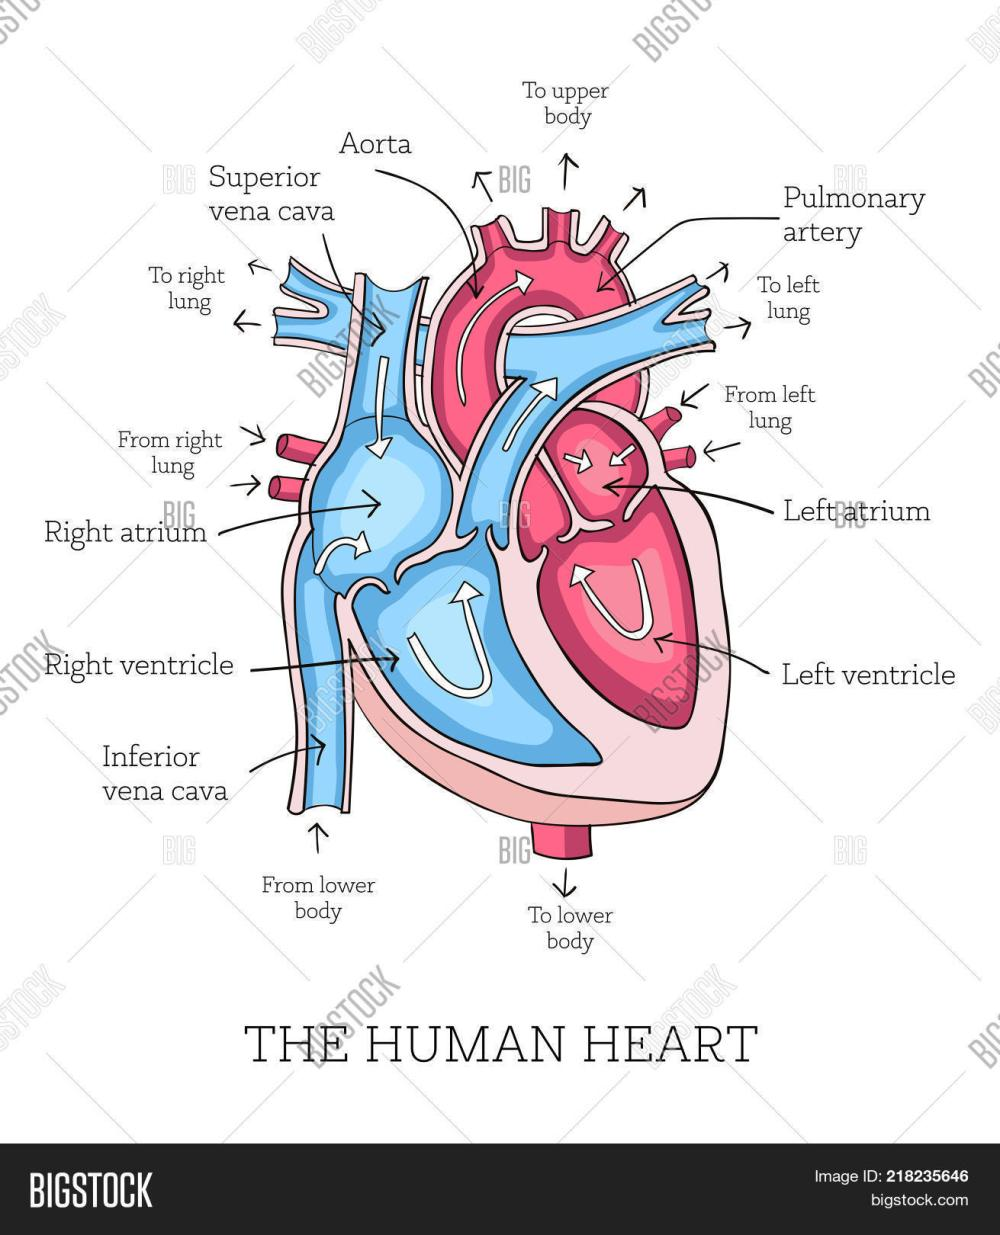 medium resolution of hand drawn illustration of human heart anatomy educational diagram showing blood flow with main parts